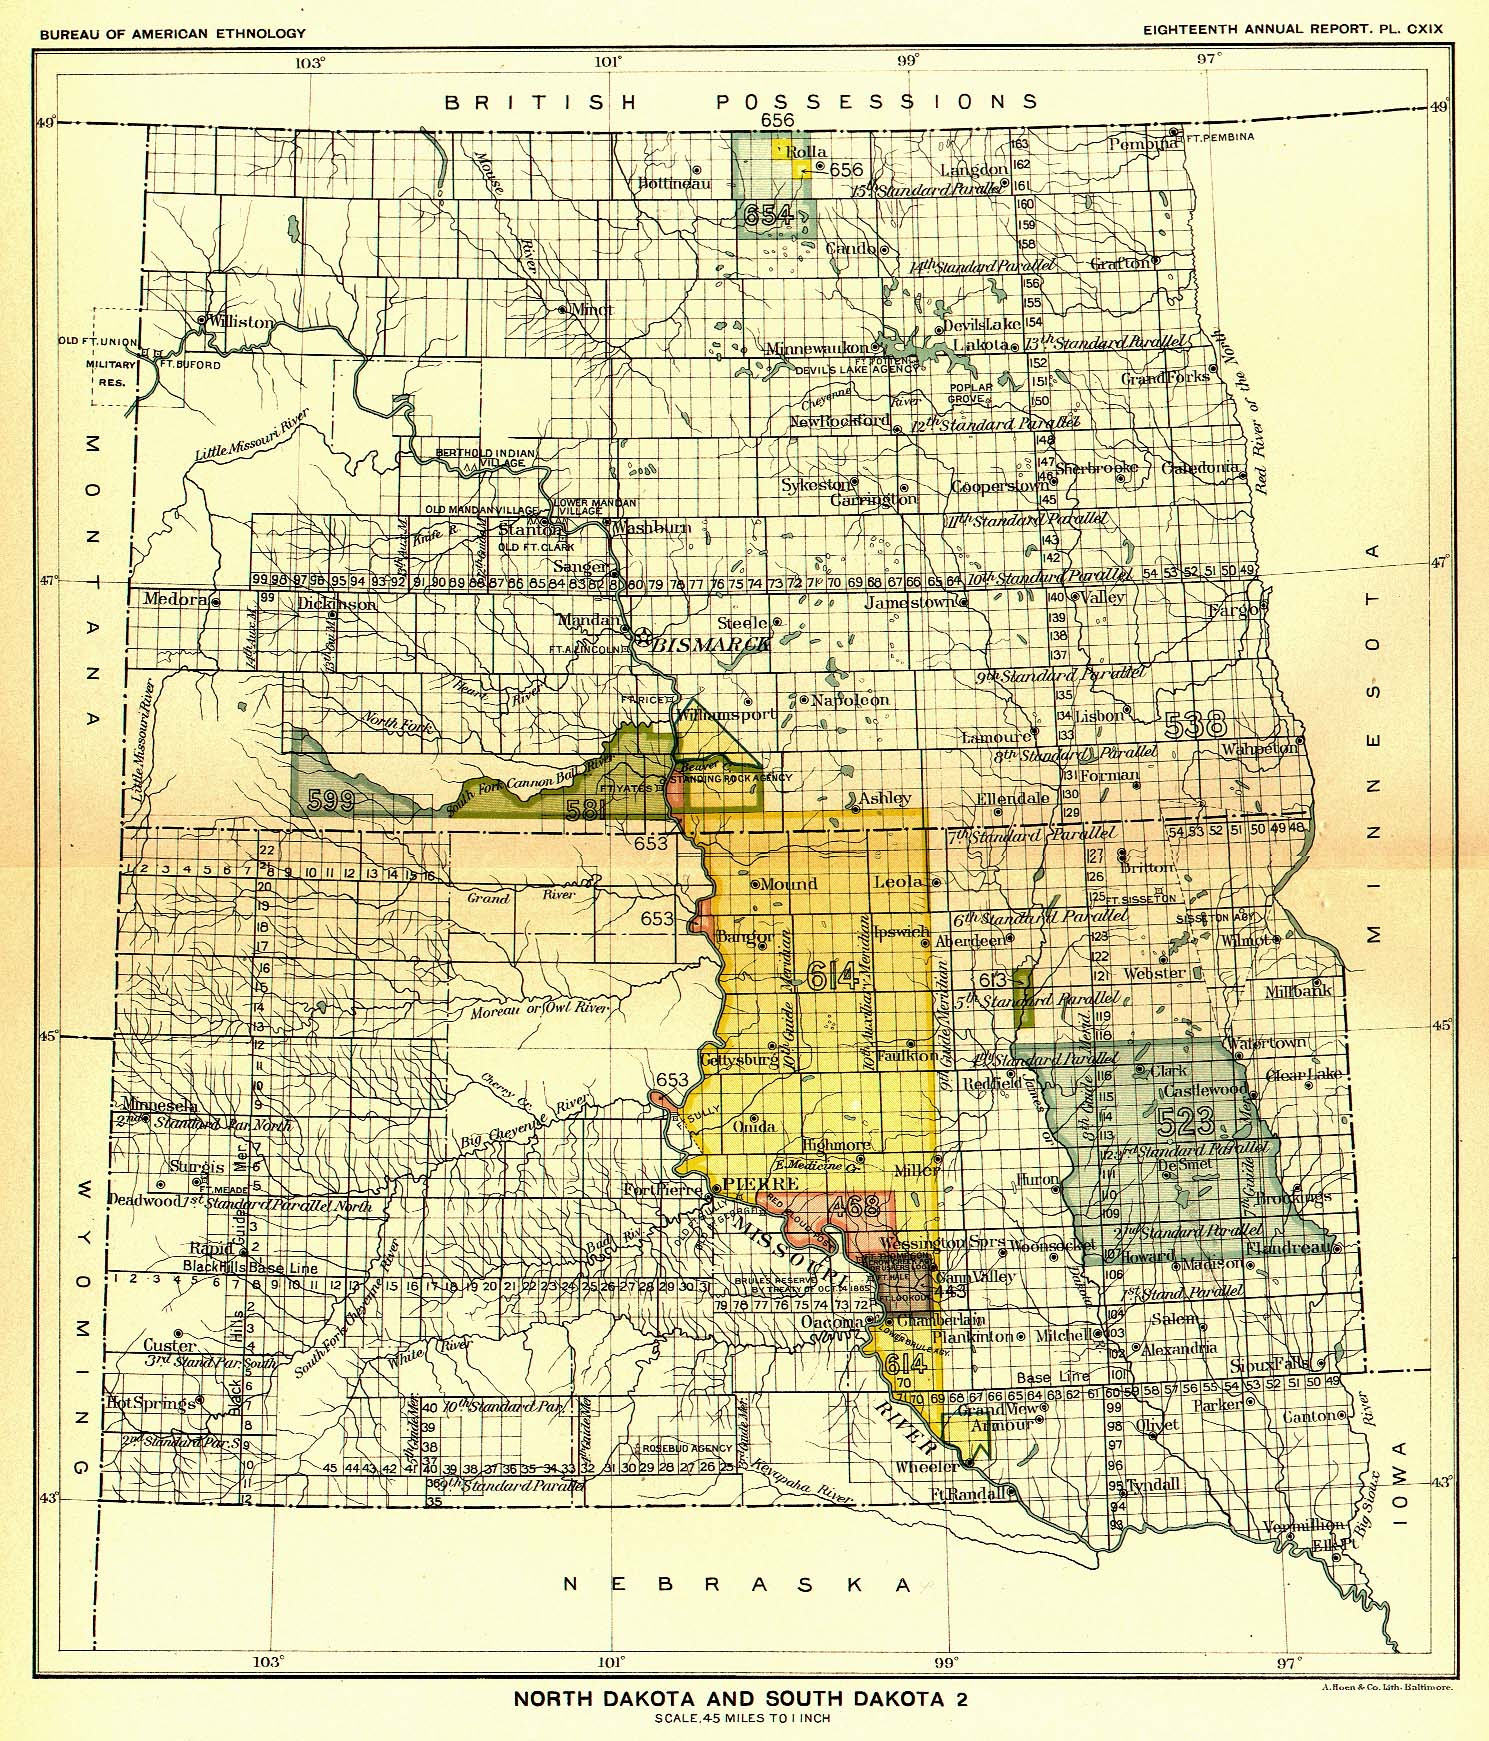 Indian Land Cessions In The U S North Dakota And South Dakota - North dakota map united states